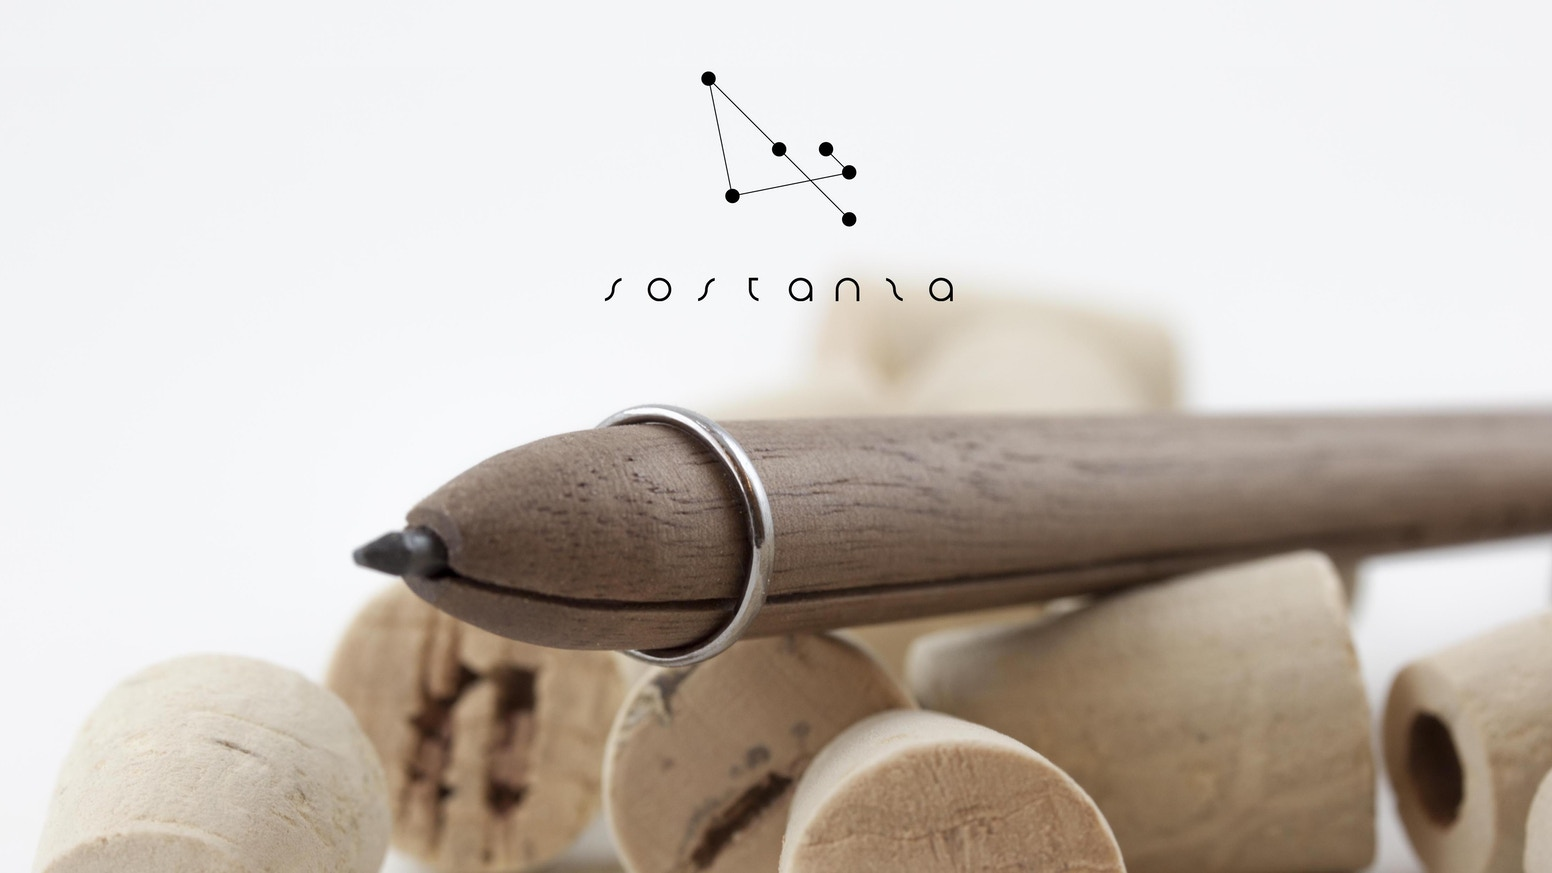 A simple object can be beautiful and work well with very little. Sostanza is a wooden pencil that never ends. Handcrafted in Italy.